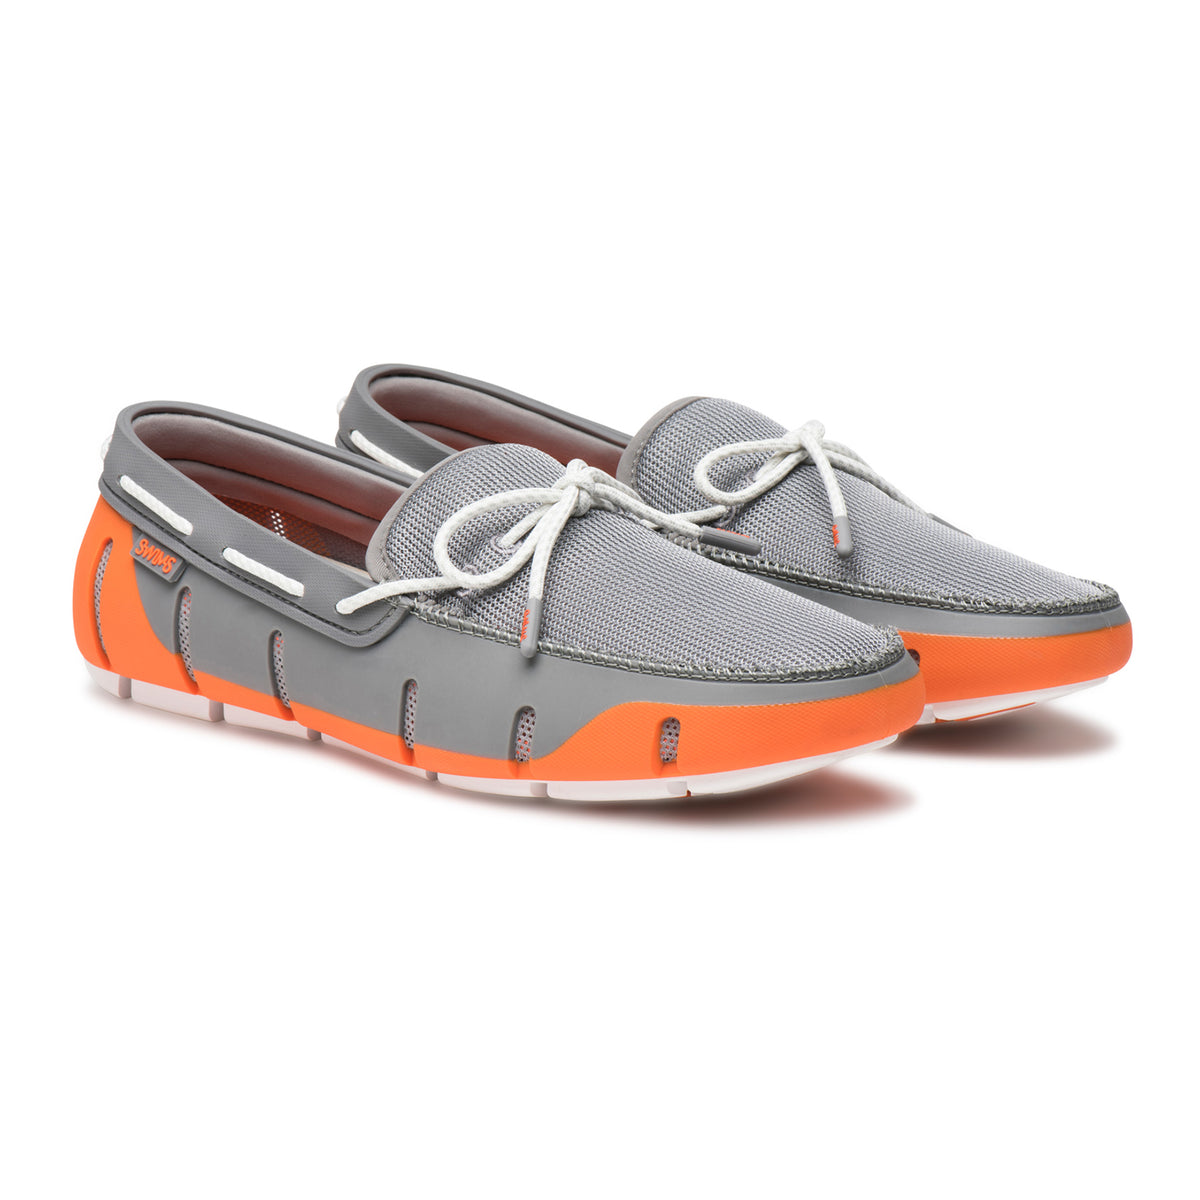 Stride Lace Loafer - background::white,variant::Orange/Gray/White Fleck